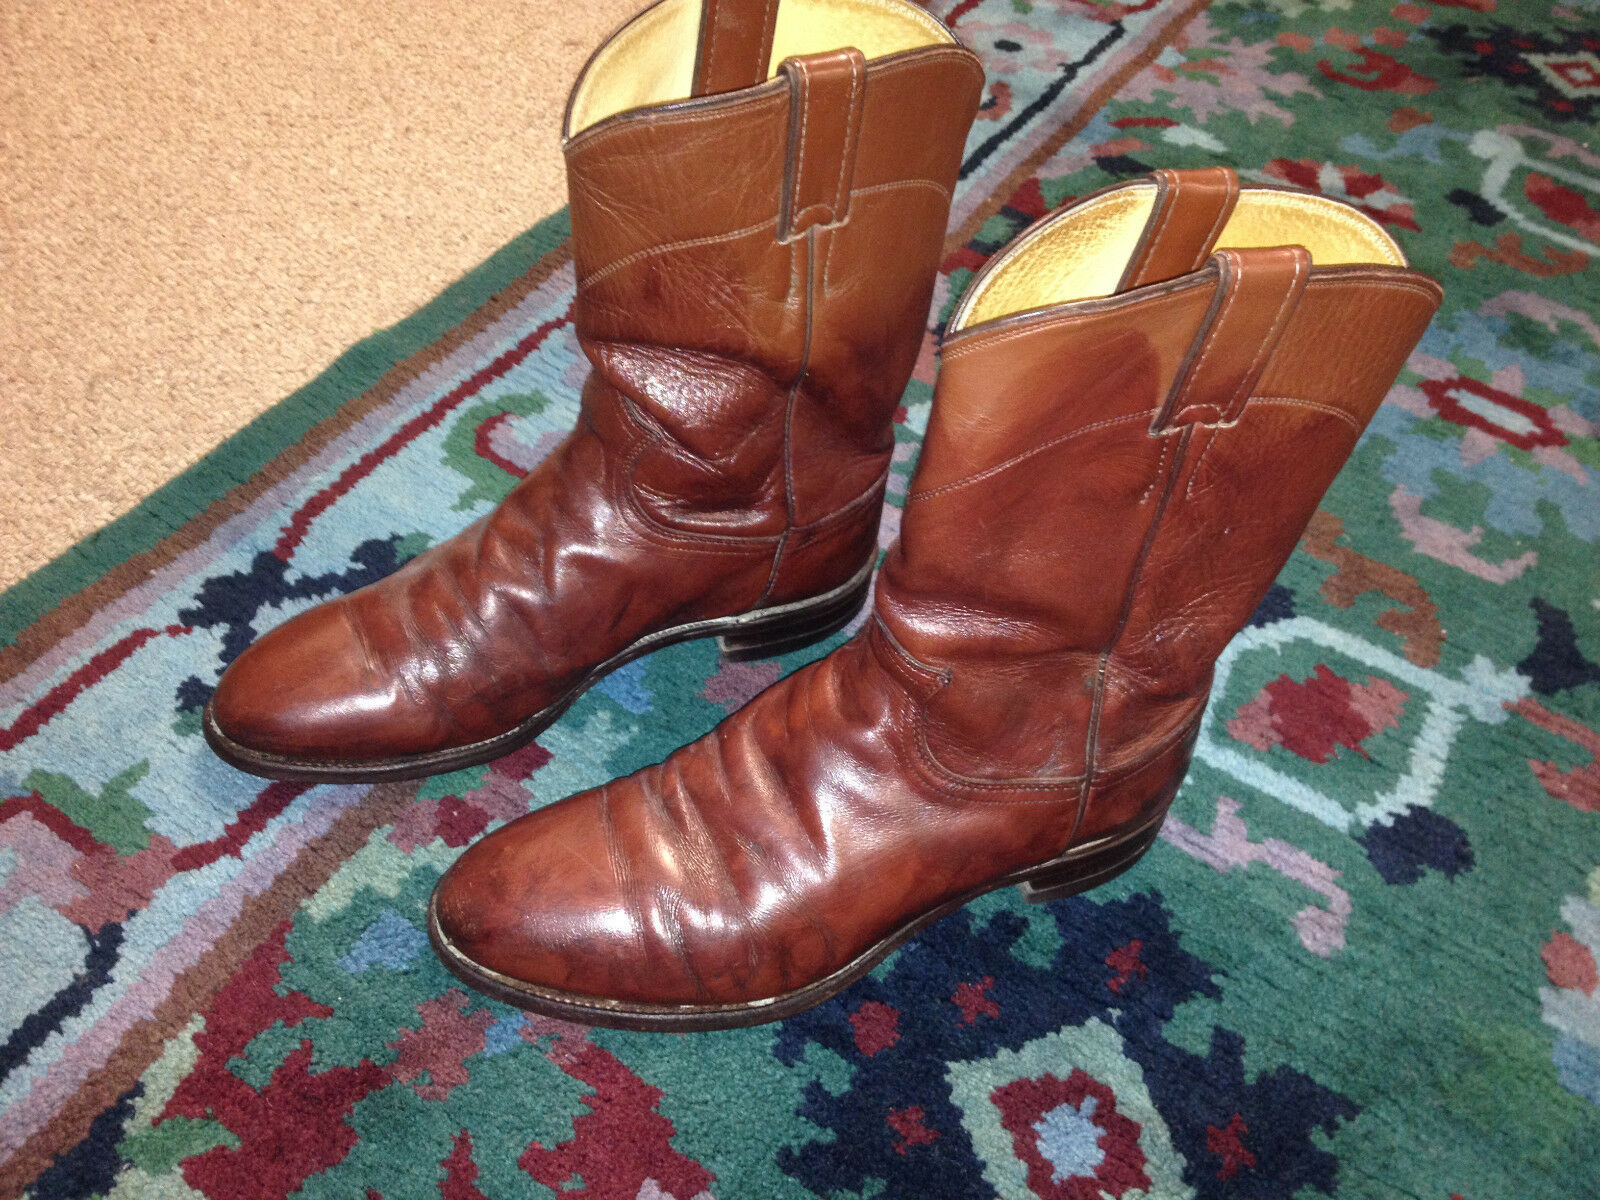 CLASSY SieS COWBOY Stiefel-sz 9 by JUSTIN-Chestnut  braun leather-NICELY BROKEN IN